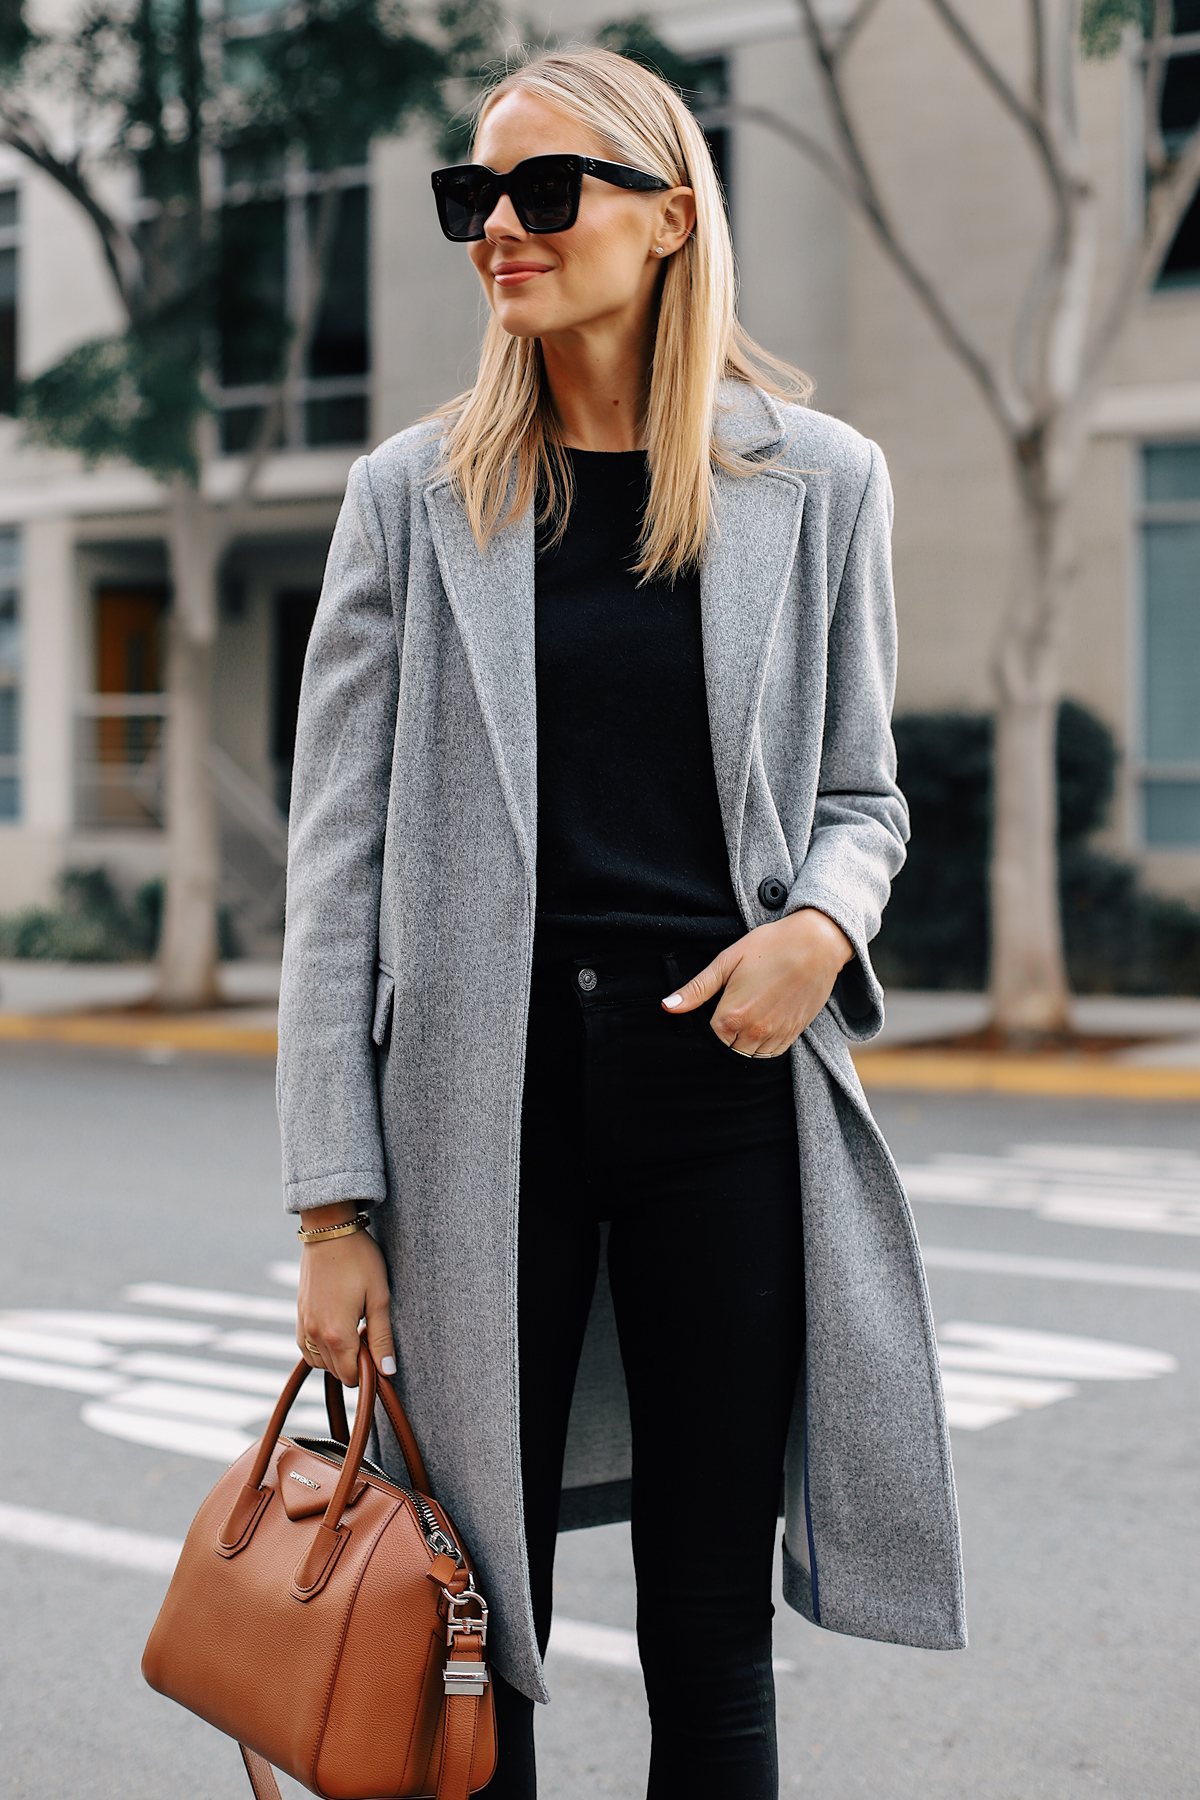 Blonde Woman Wearing Topshop Grey Coat Black Sweater Black Skinny Jeans Tan Satchel Handbag Fashion Jackson San Diego Fashion Blogger Street Style